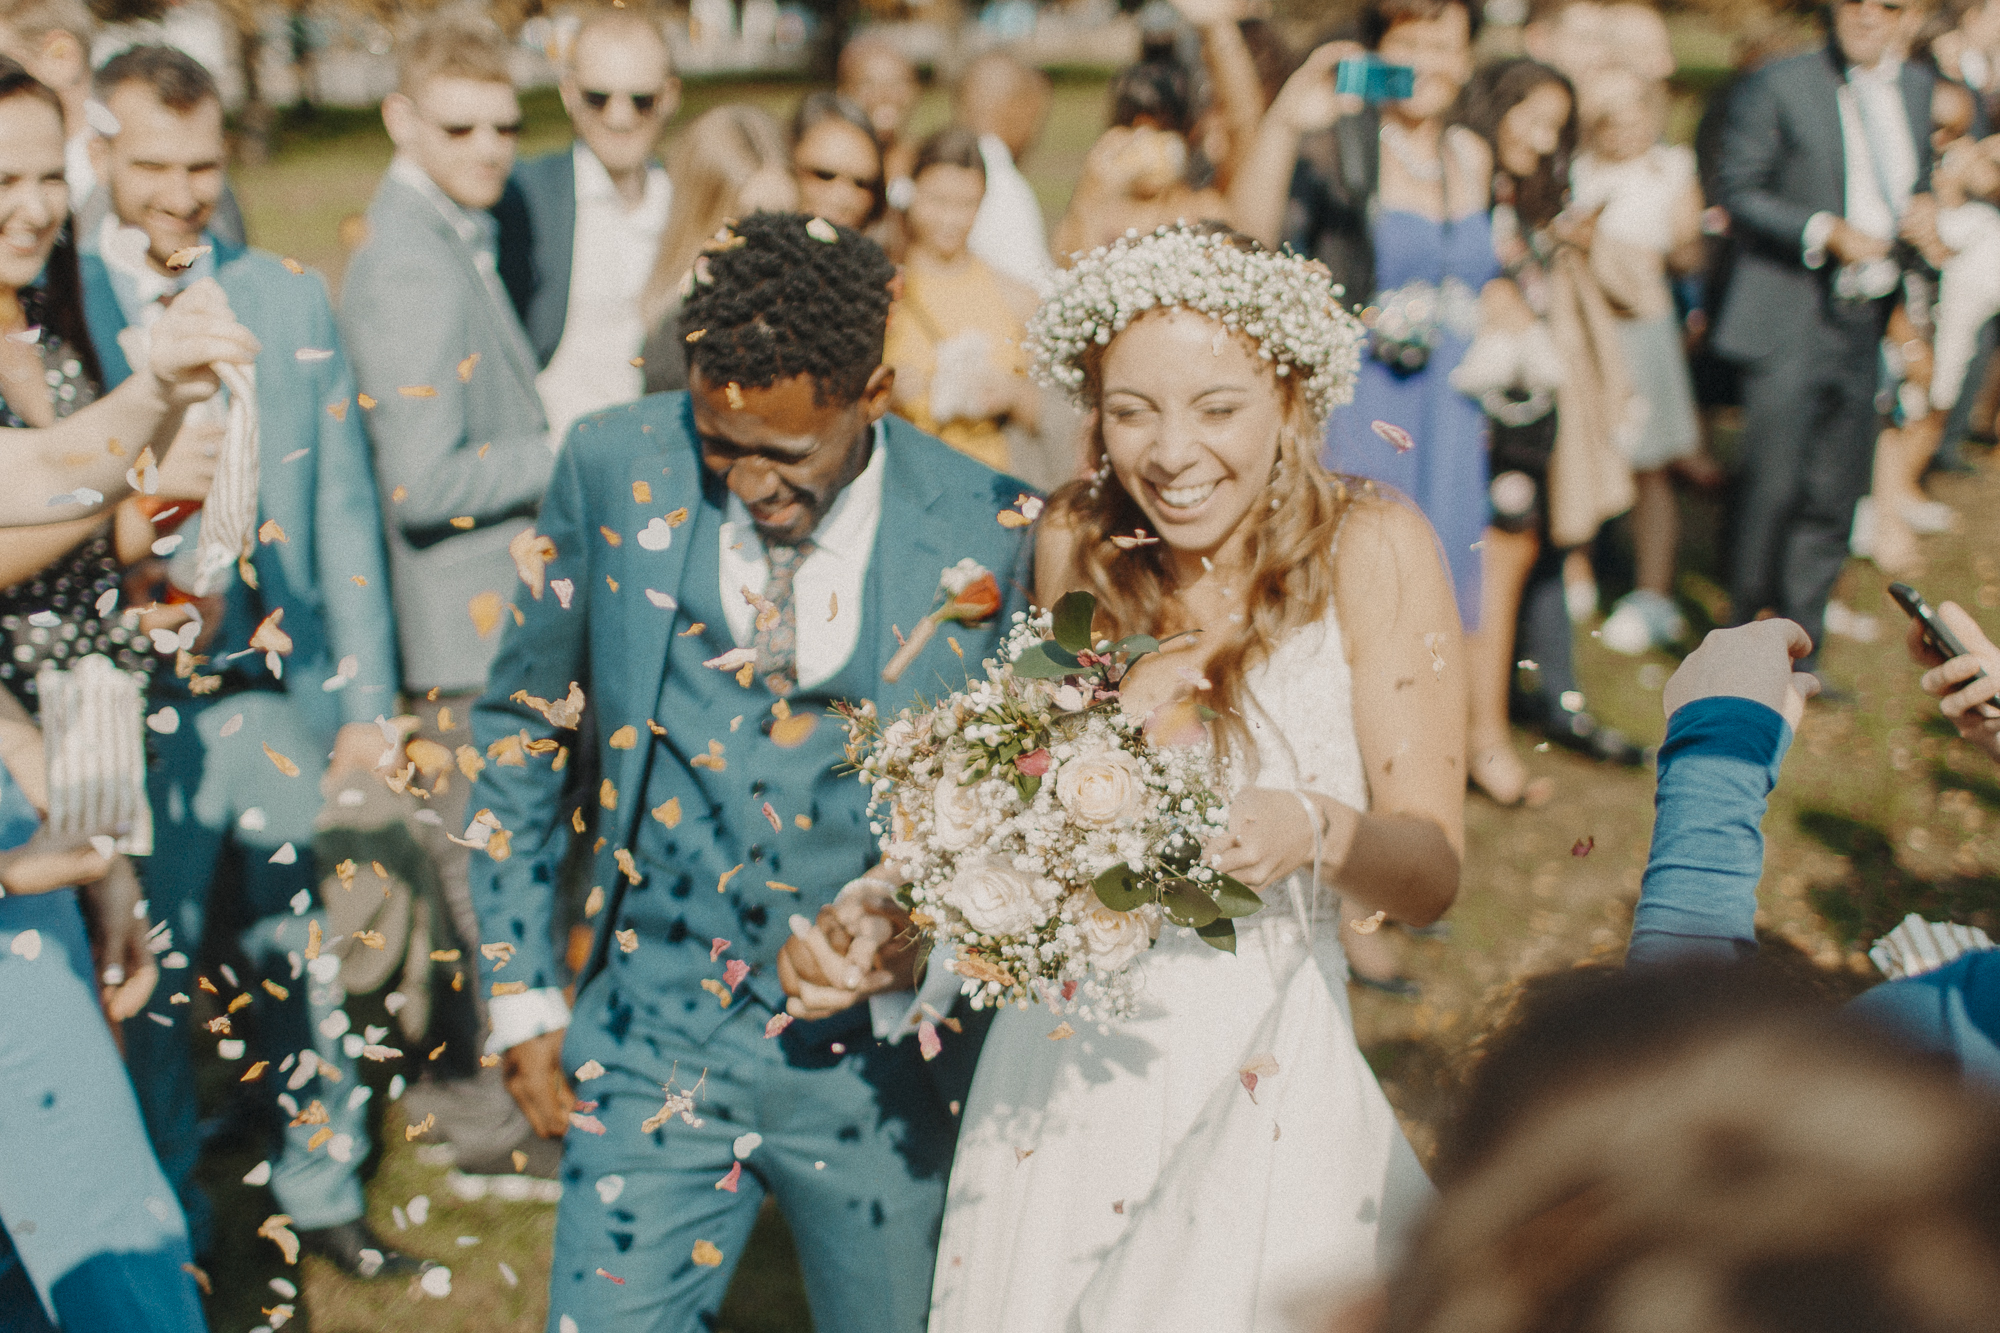 SOPHIE & DWAYNE - hitched in the British summertime